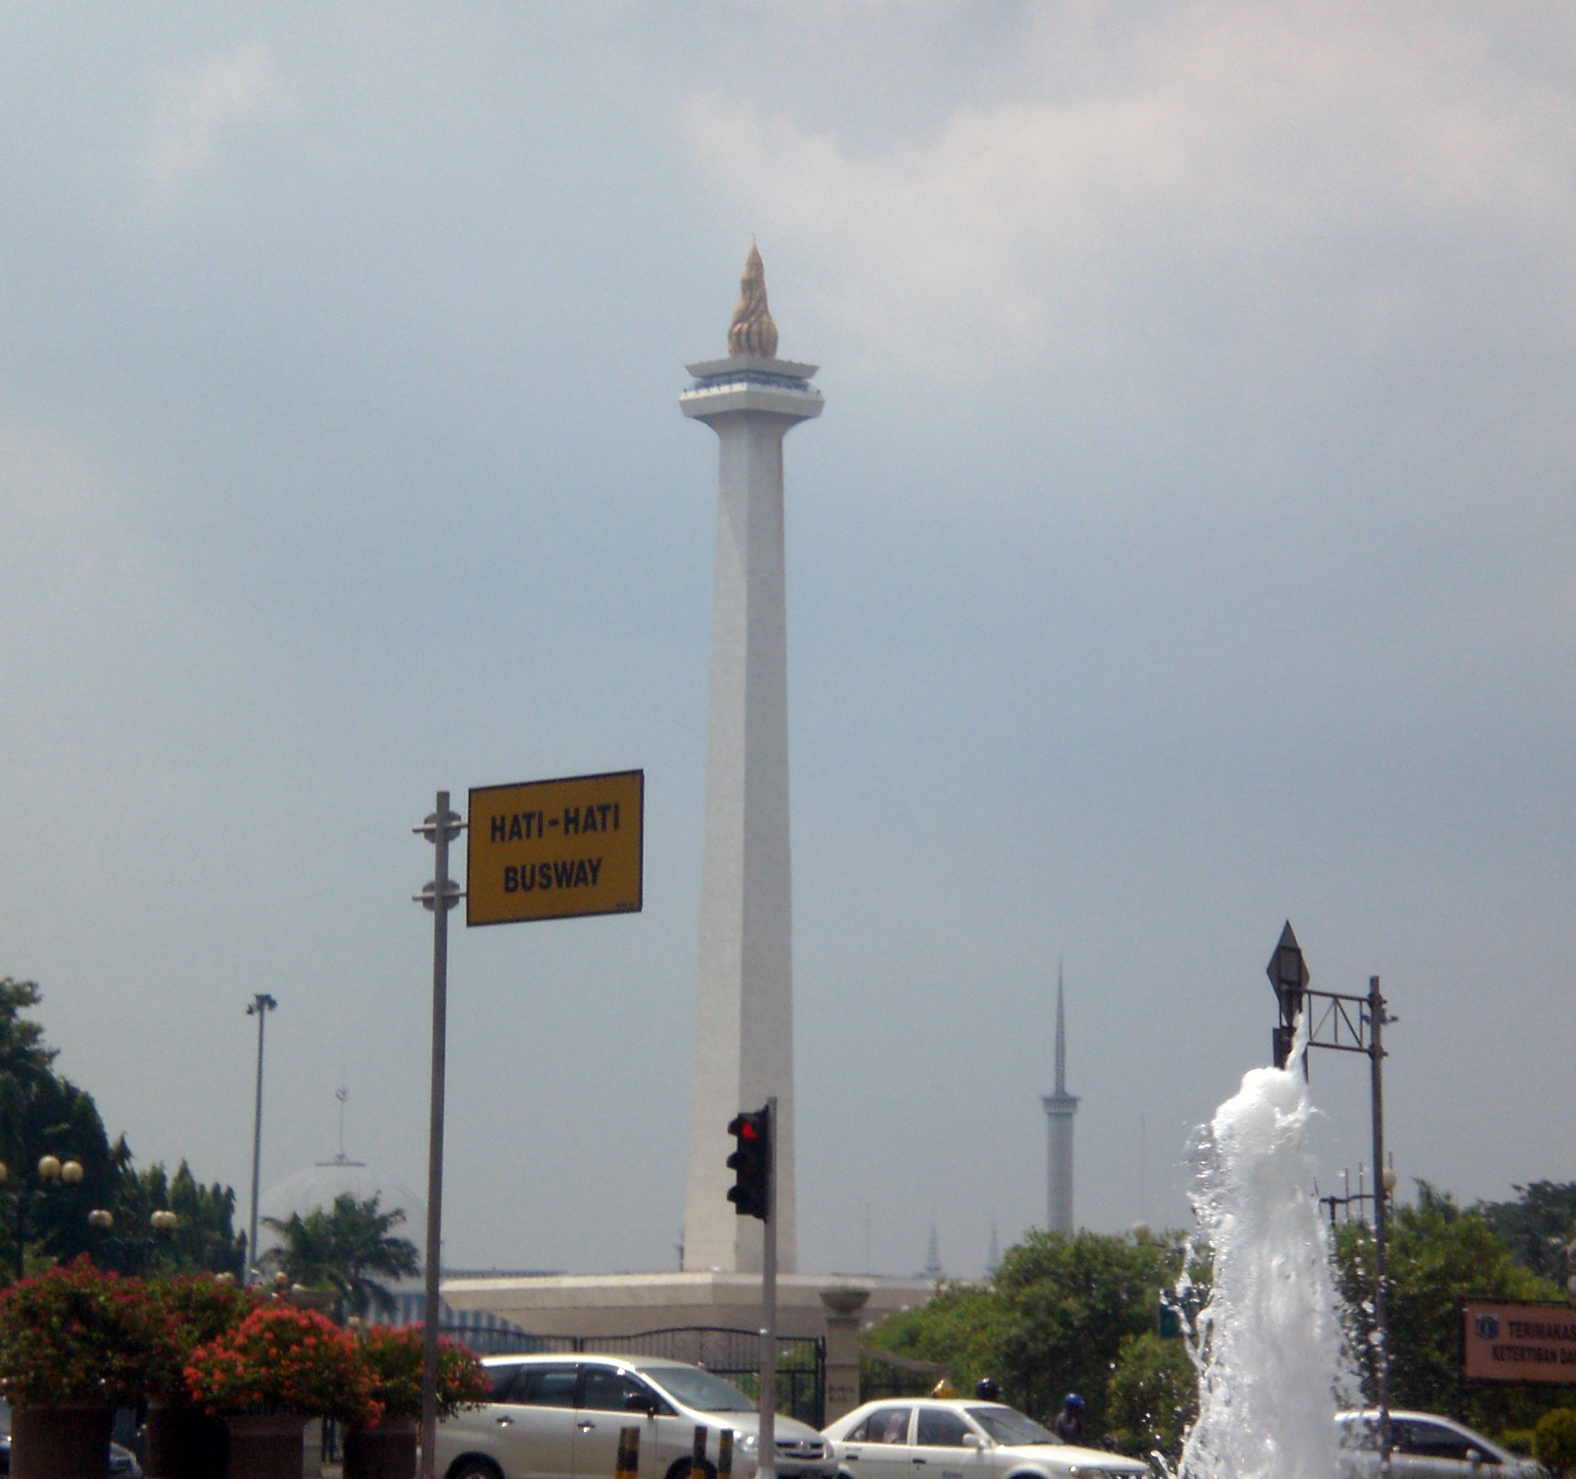 English traffic expressions from my trip to Jakarta – Wil